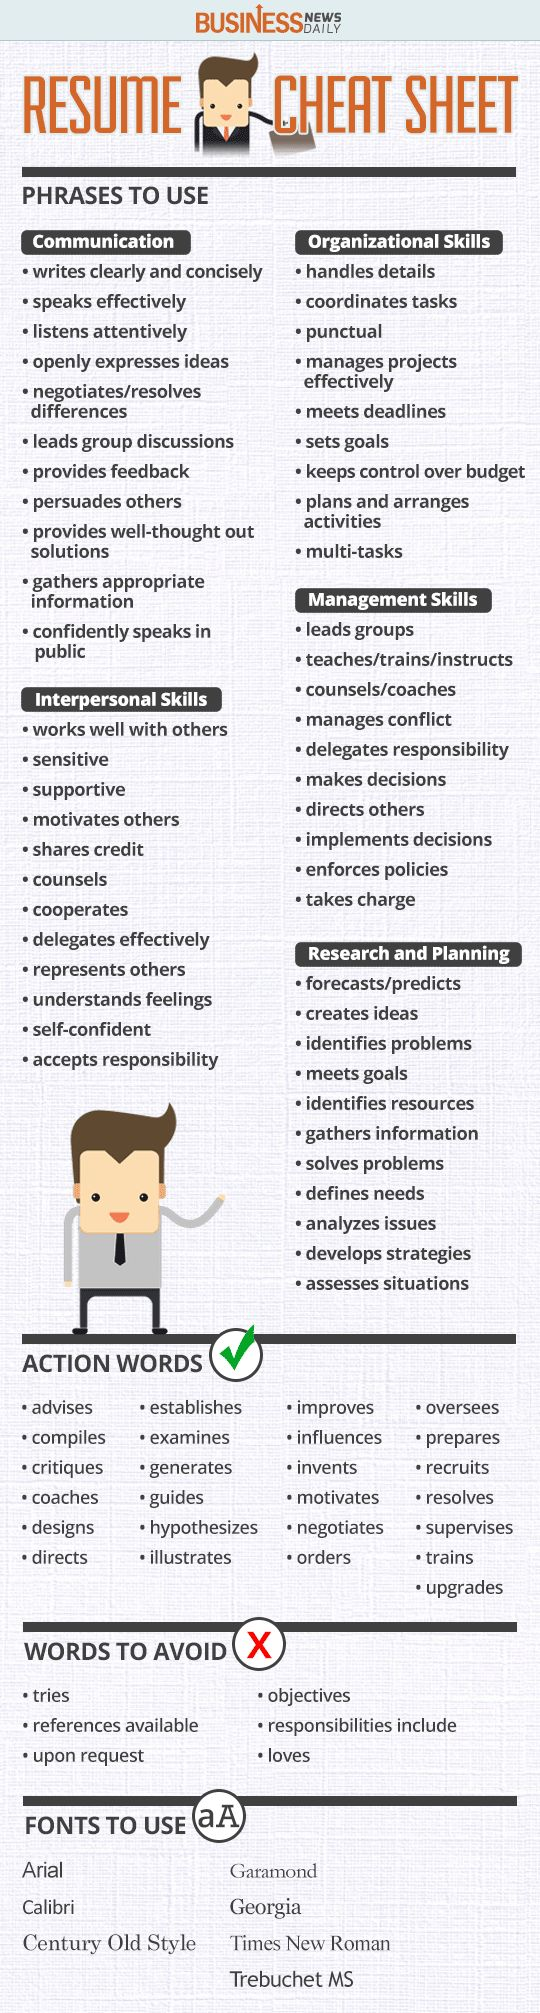 Opposenewapstandardsus  Seductive  Ideas About Resume On Pinterest  Cv Format Resume Cv And  With Heavenly Resume Cheat Sheet Infographic Andrews Almost Done With A Complete Unit On Employment Which With Awesome Optimal Resume Mdc Also Sample Pharmacist Resume In Addition Teaching Resume Objective And Leadership Resume Examples As Well As Free Online Resume Template Additionally Nursing Resume Sample From Pinterestcom With Opposenewapstandardsus  Heavenly  Ideas About Resume On Pinterest  Cv Format Resume Cv And  With Awesome Resume Cheat Sheet Infographic Andrews Almost Done With A Complete Unit On Employment Which And Seductive Optimal Resume Mdc Also Sample Pharmacist Resume In Addition Teaching Resume Objective From Pinterestcom